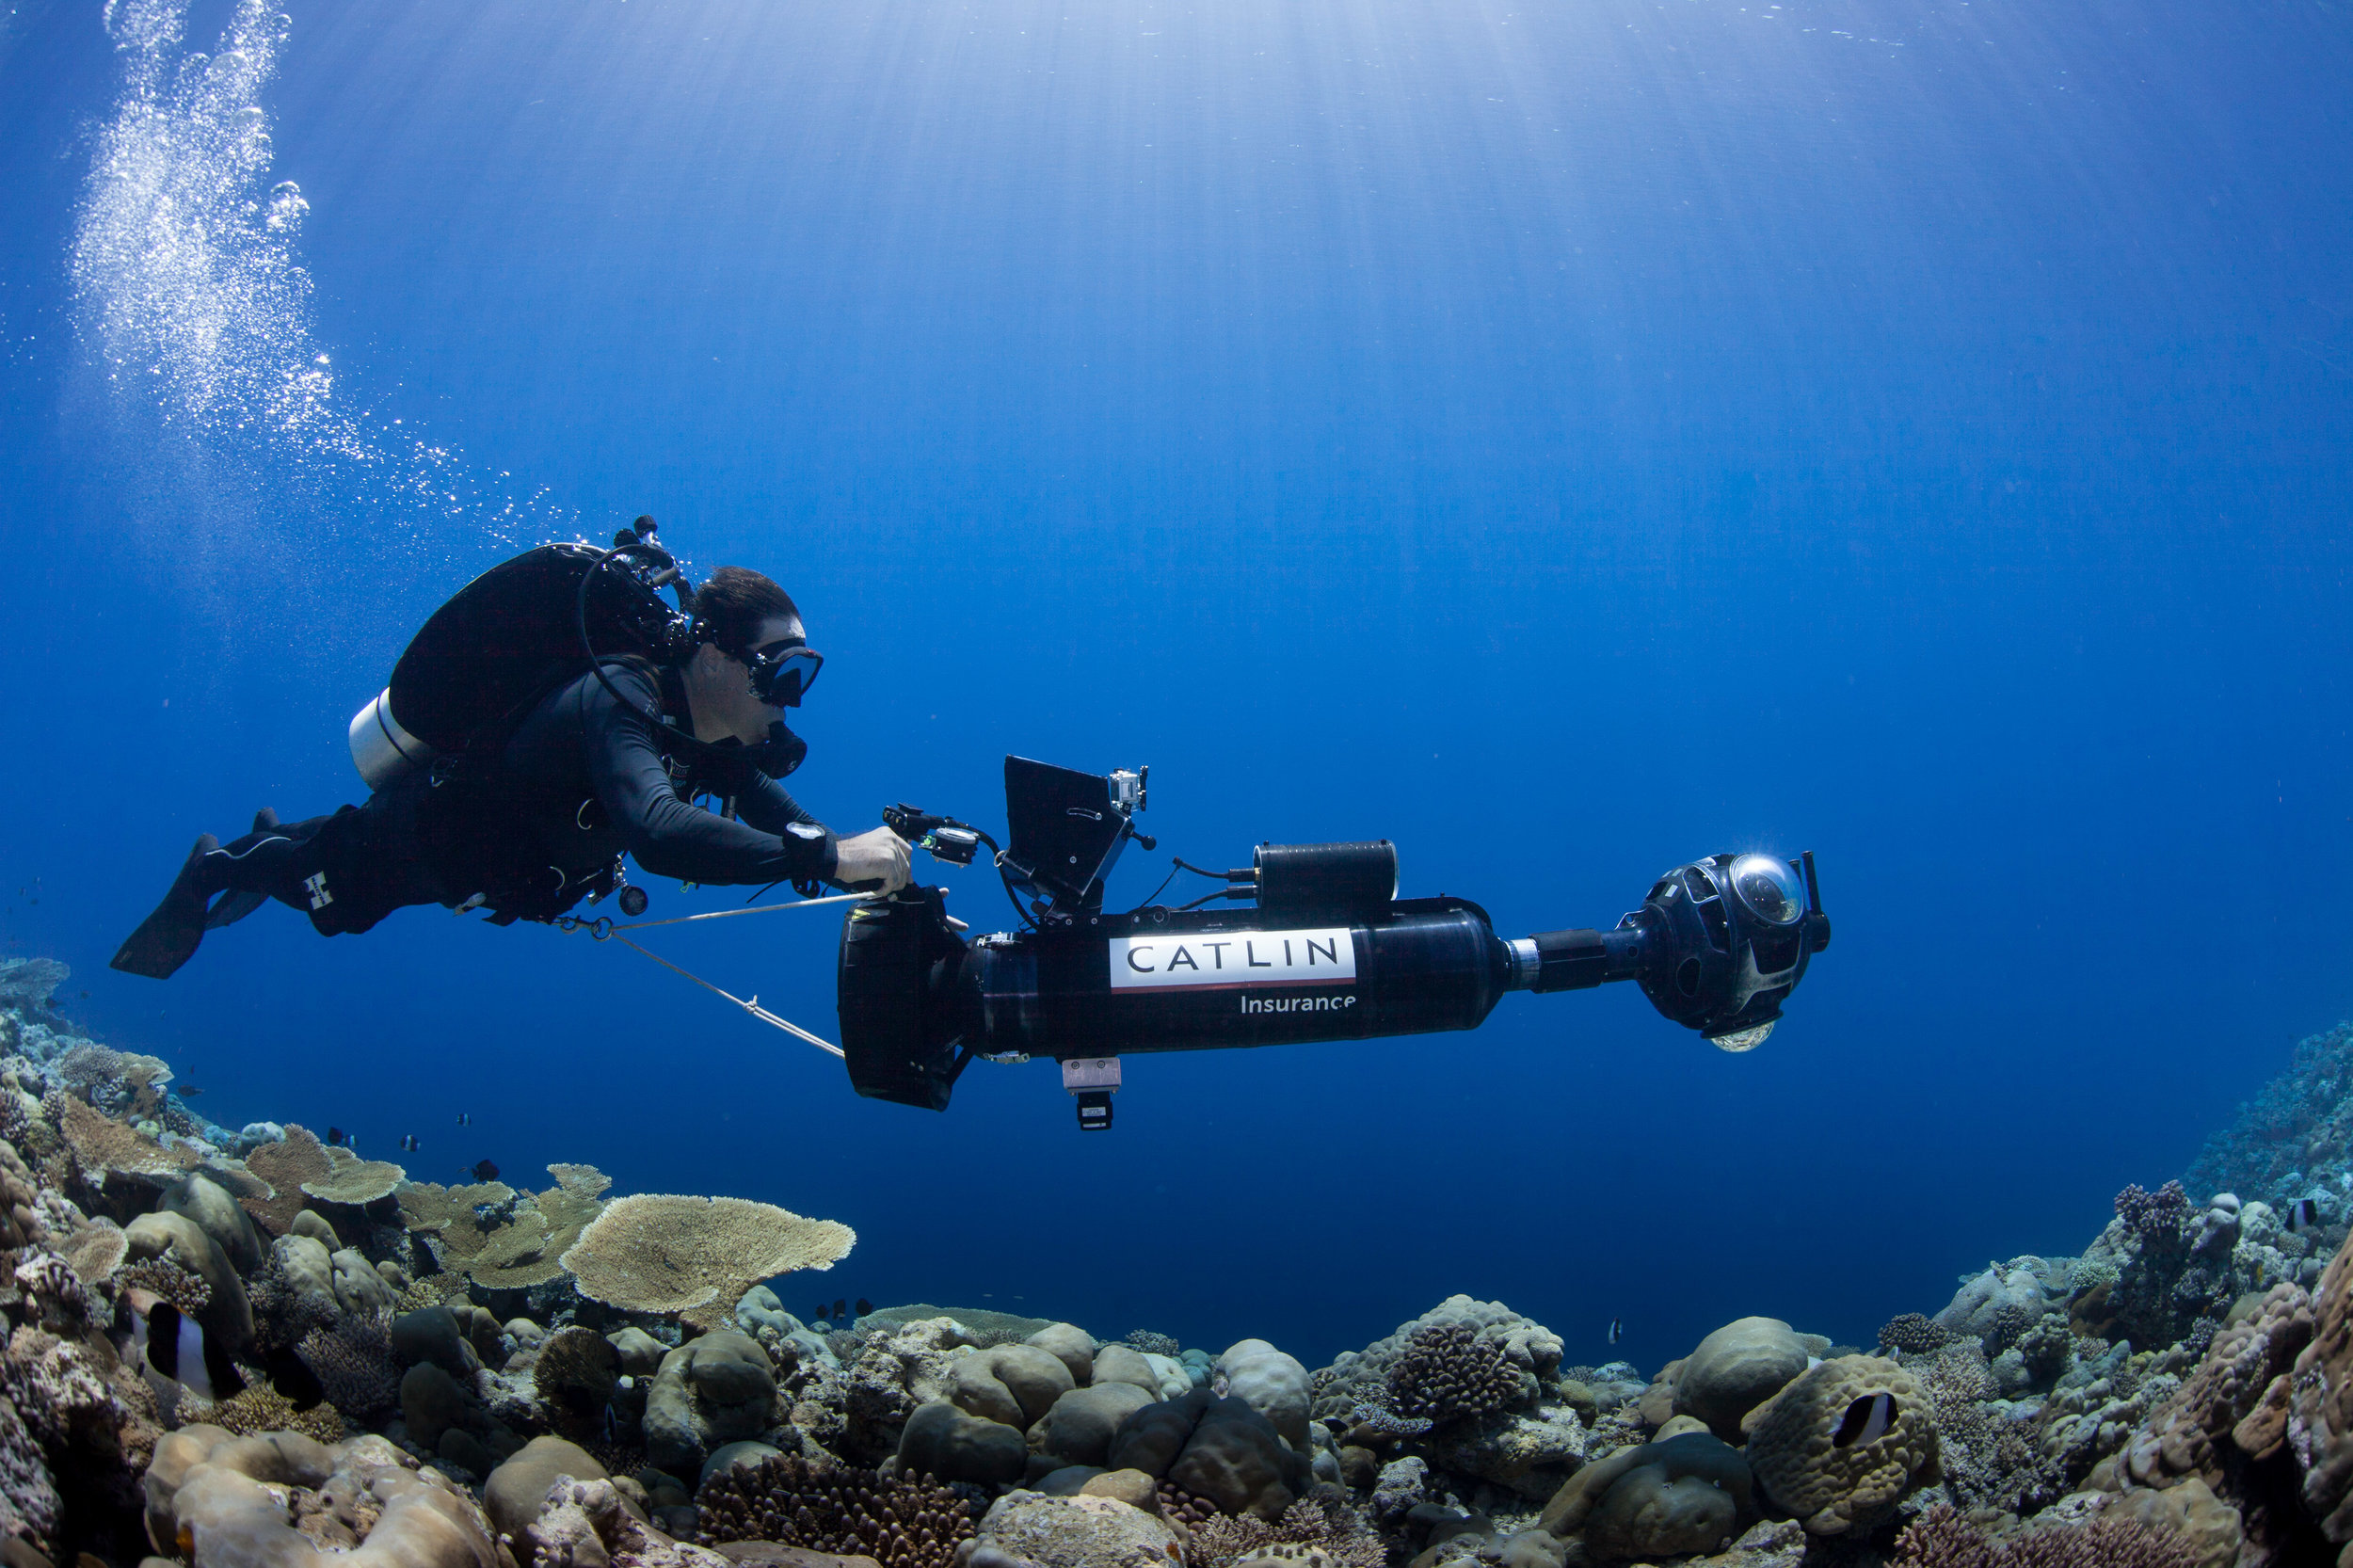 Dr. Ben Neal driving the SV-II camera in the Maldives campaign. Photo by Christophe. Bailhache.